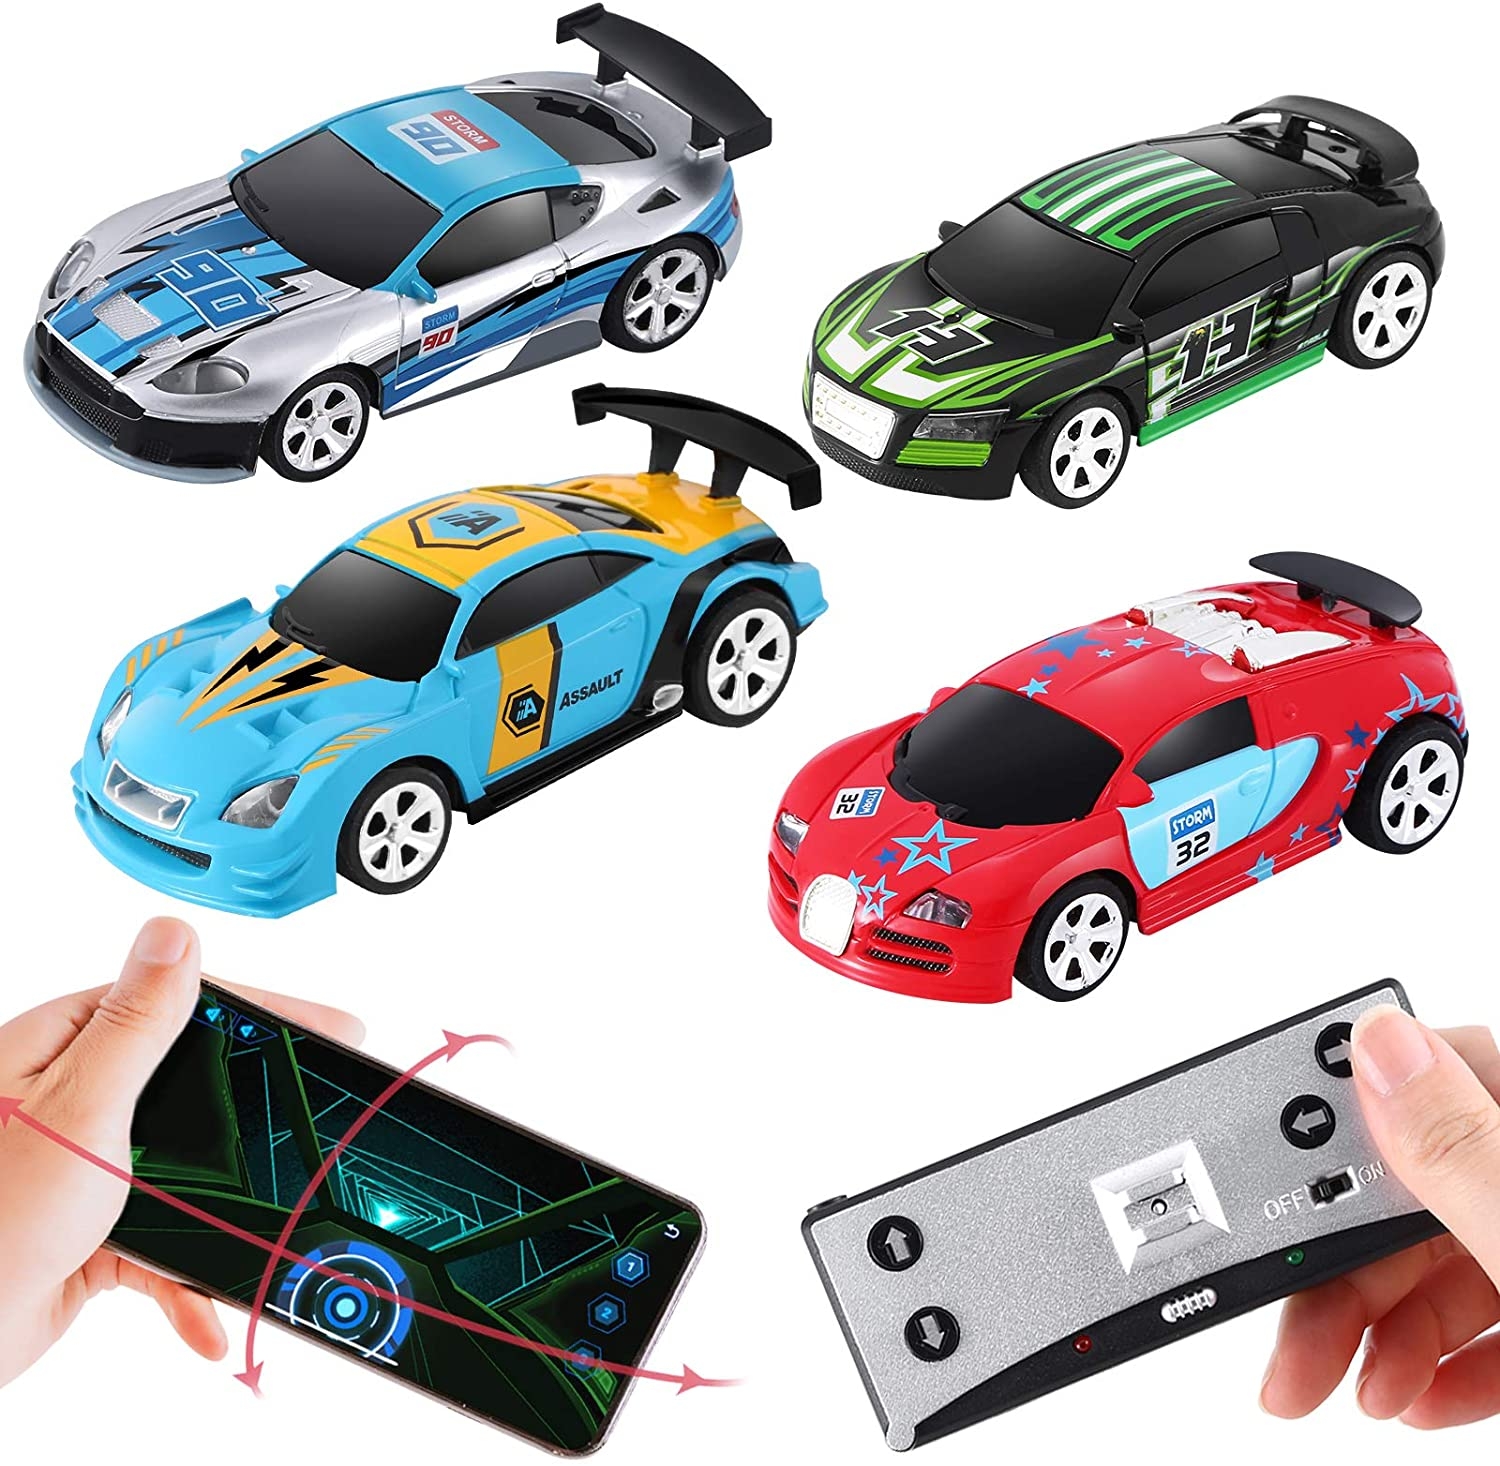 App Remote Control Mini Racing Car for Kid Boy Girl, 2.4 GHZ High Speed RC Car, Kid Toys Gifts (Green)